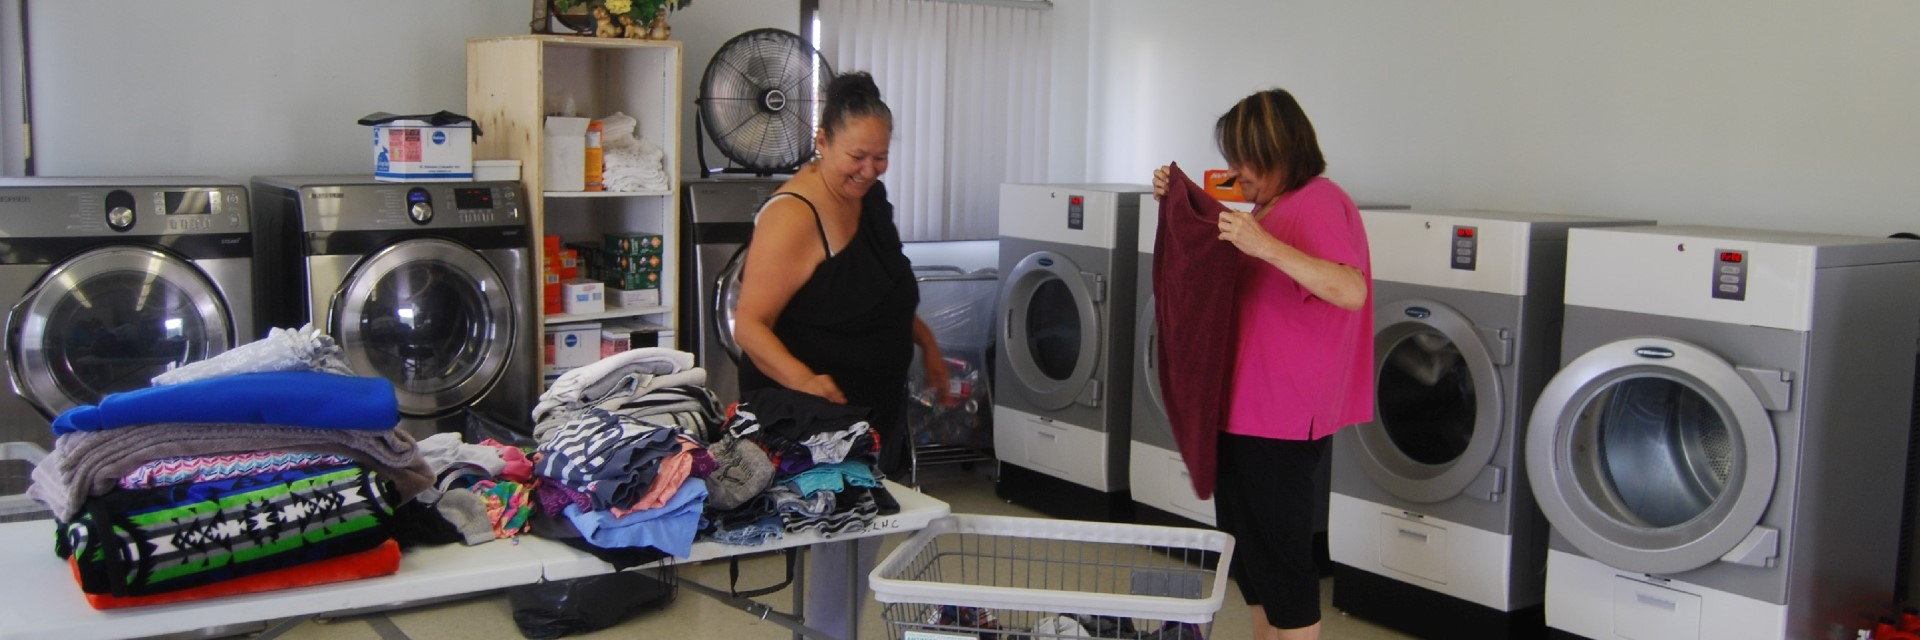 Home Care laundry service